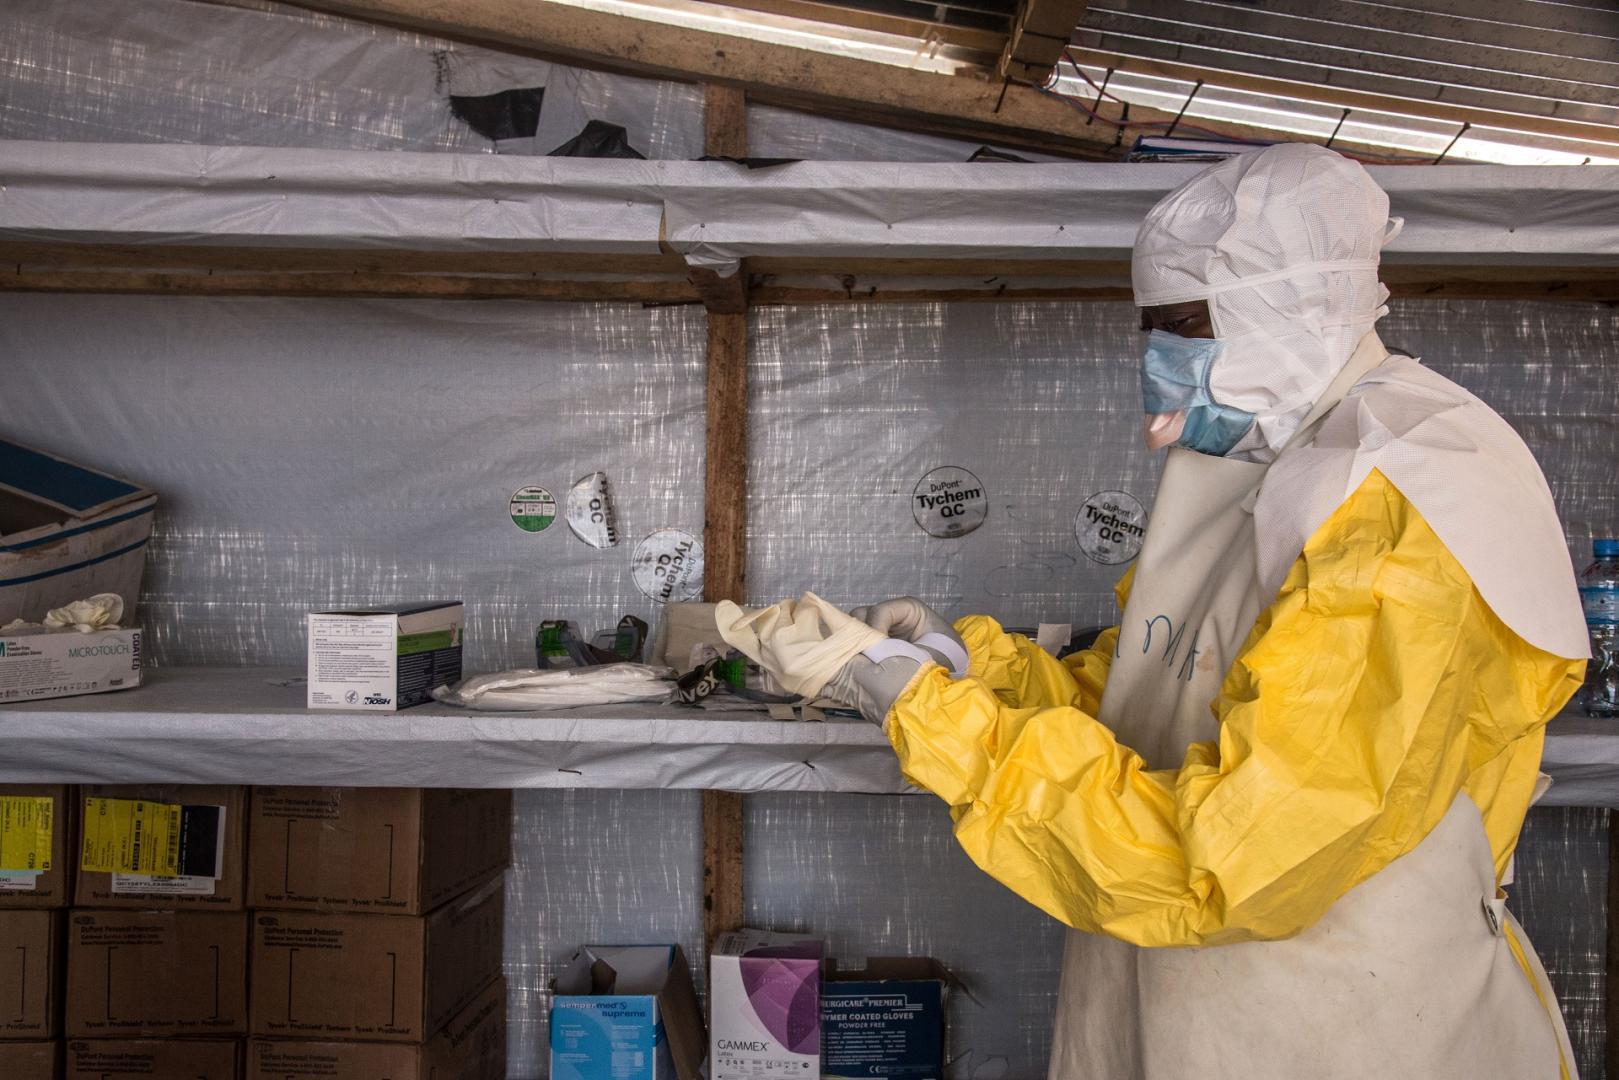 Guinea records West Africa's first Marburg virus death, WHO says